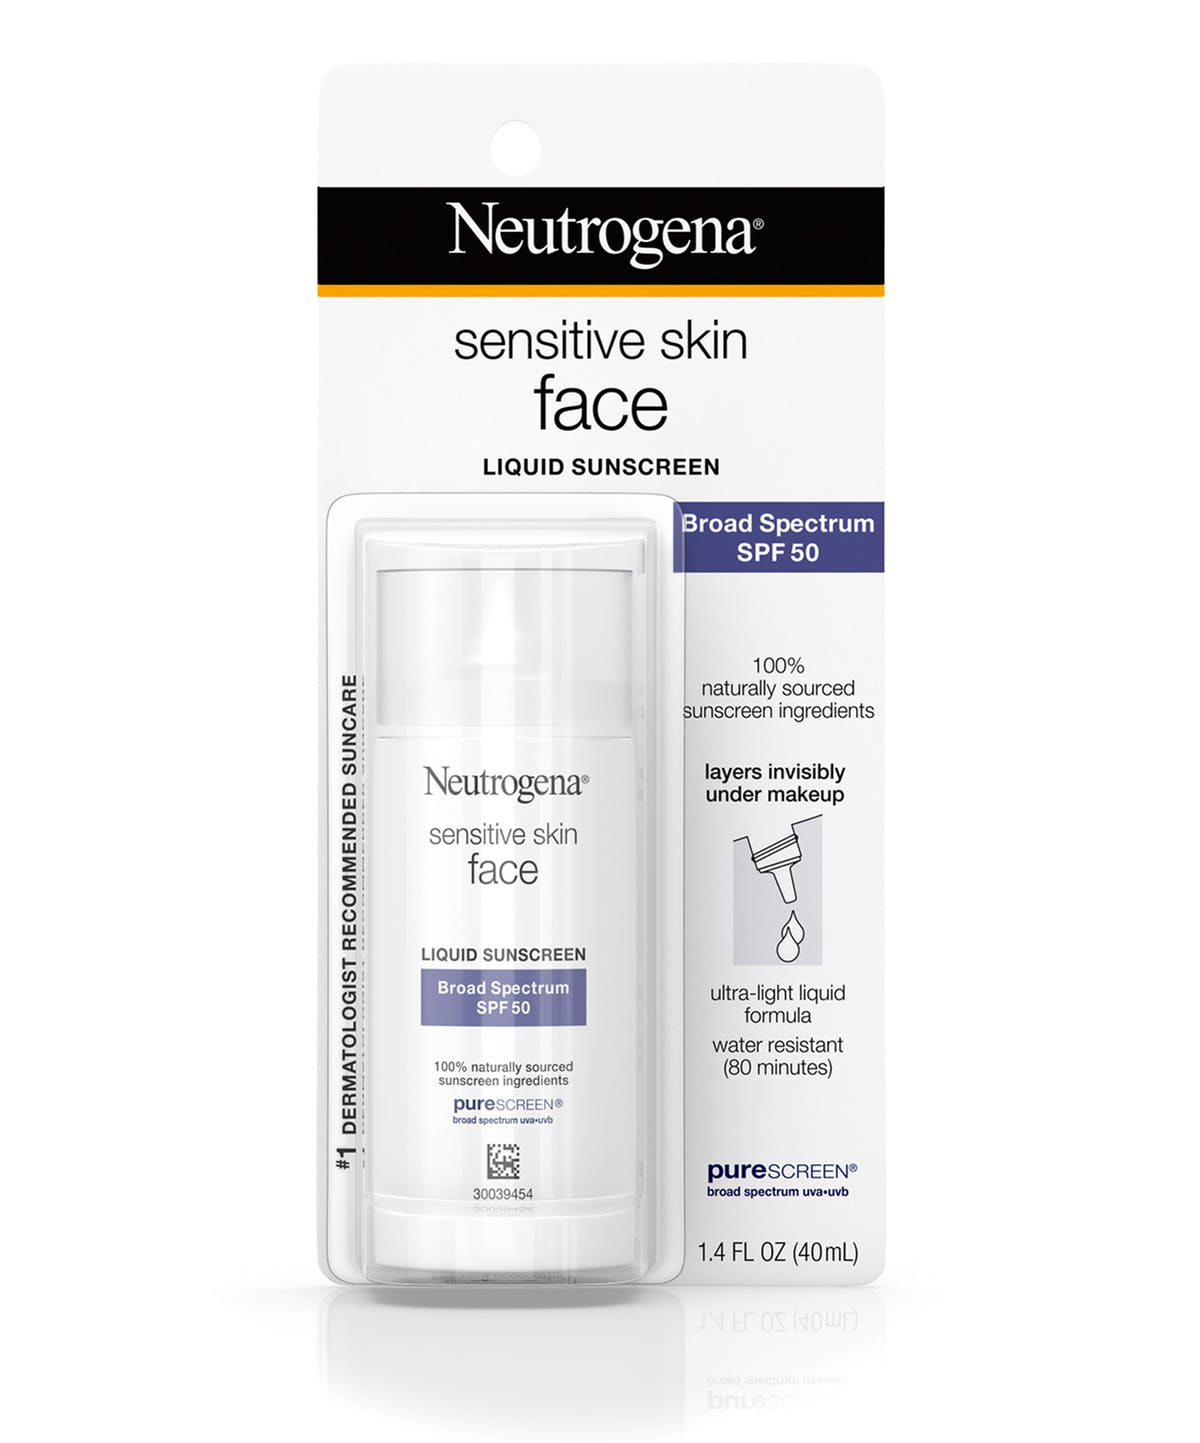 Neutrogena Sensitive Skin Face Liquid Sunscreen Broad Spectrum Spf 50